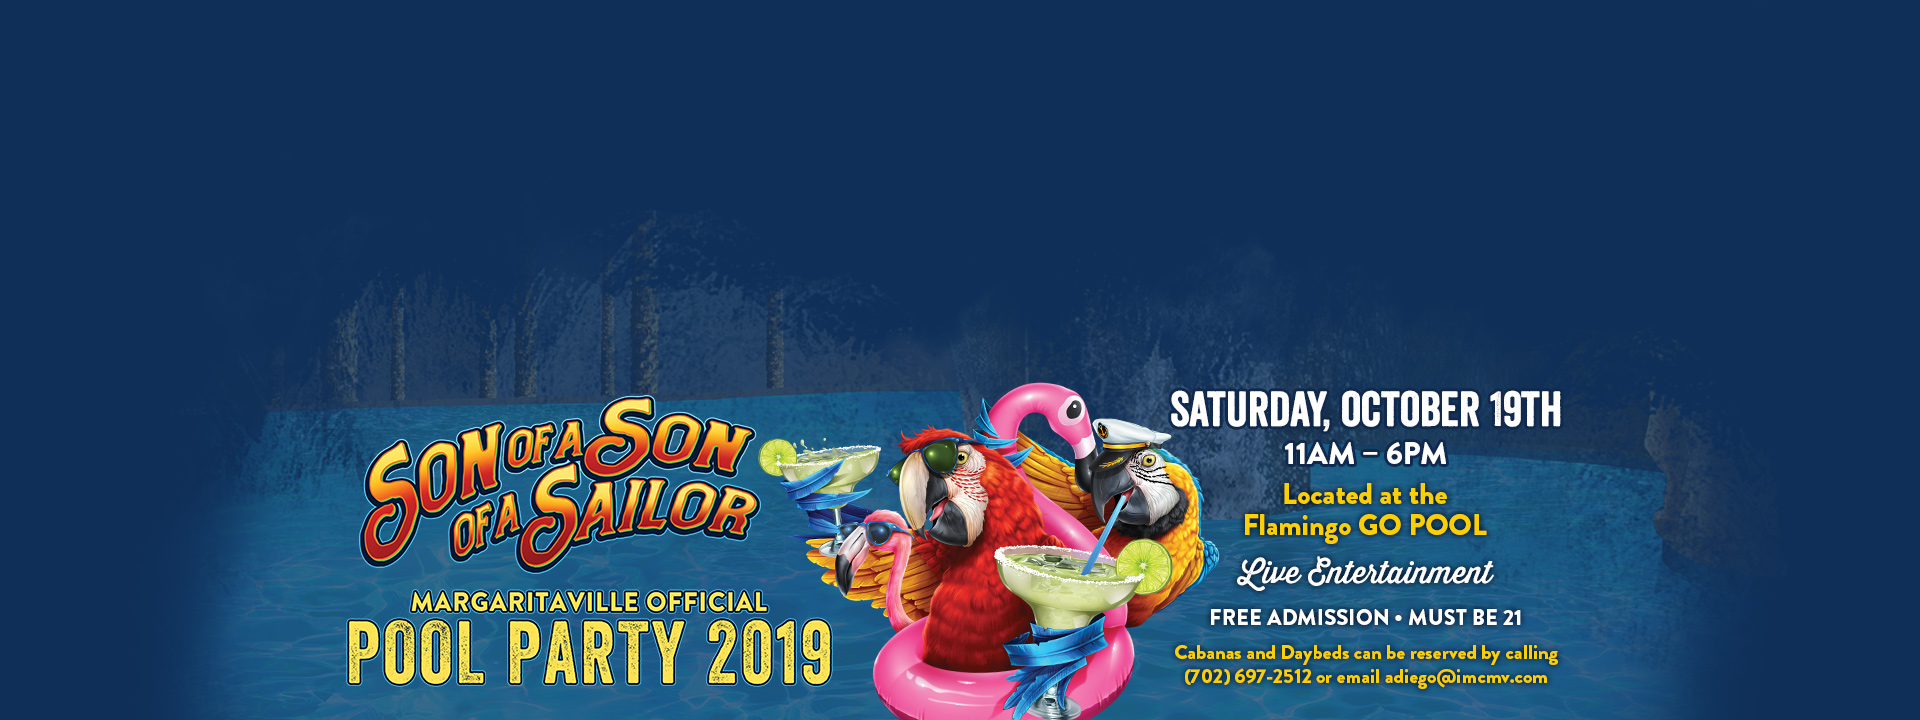 Son of a Son of a Sailor Margaritaville Official Pool Party 2019